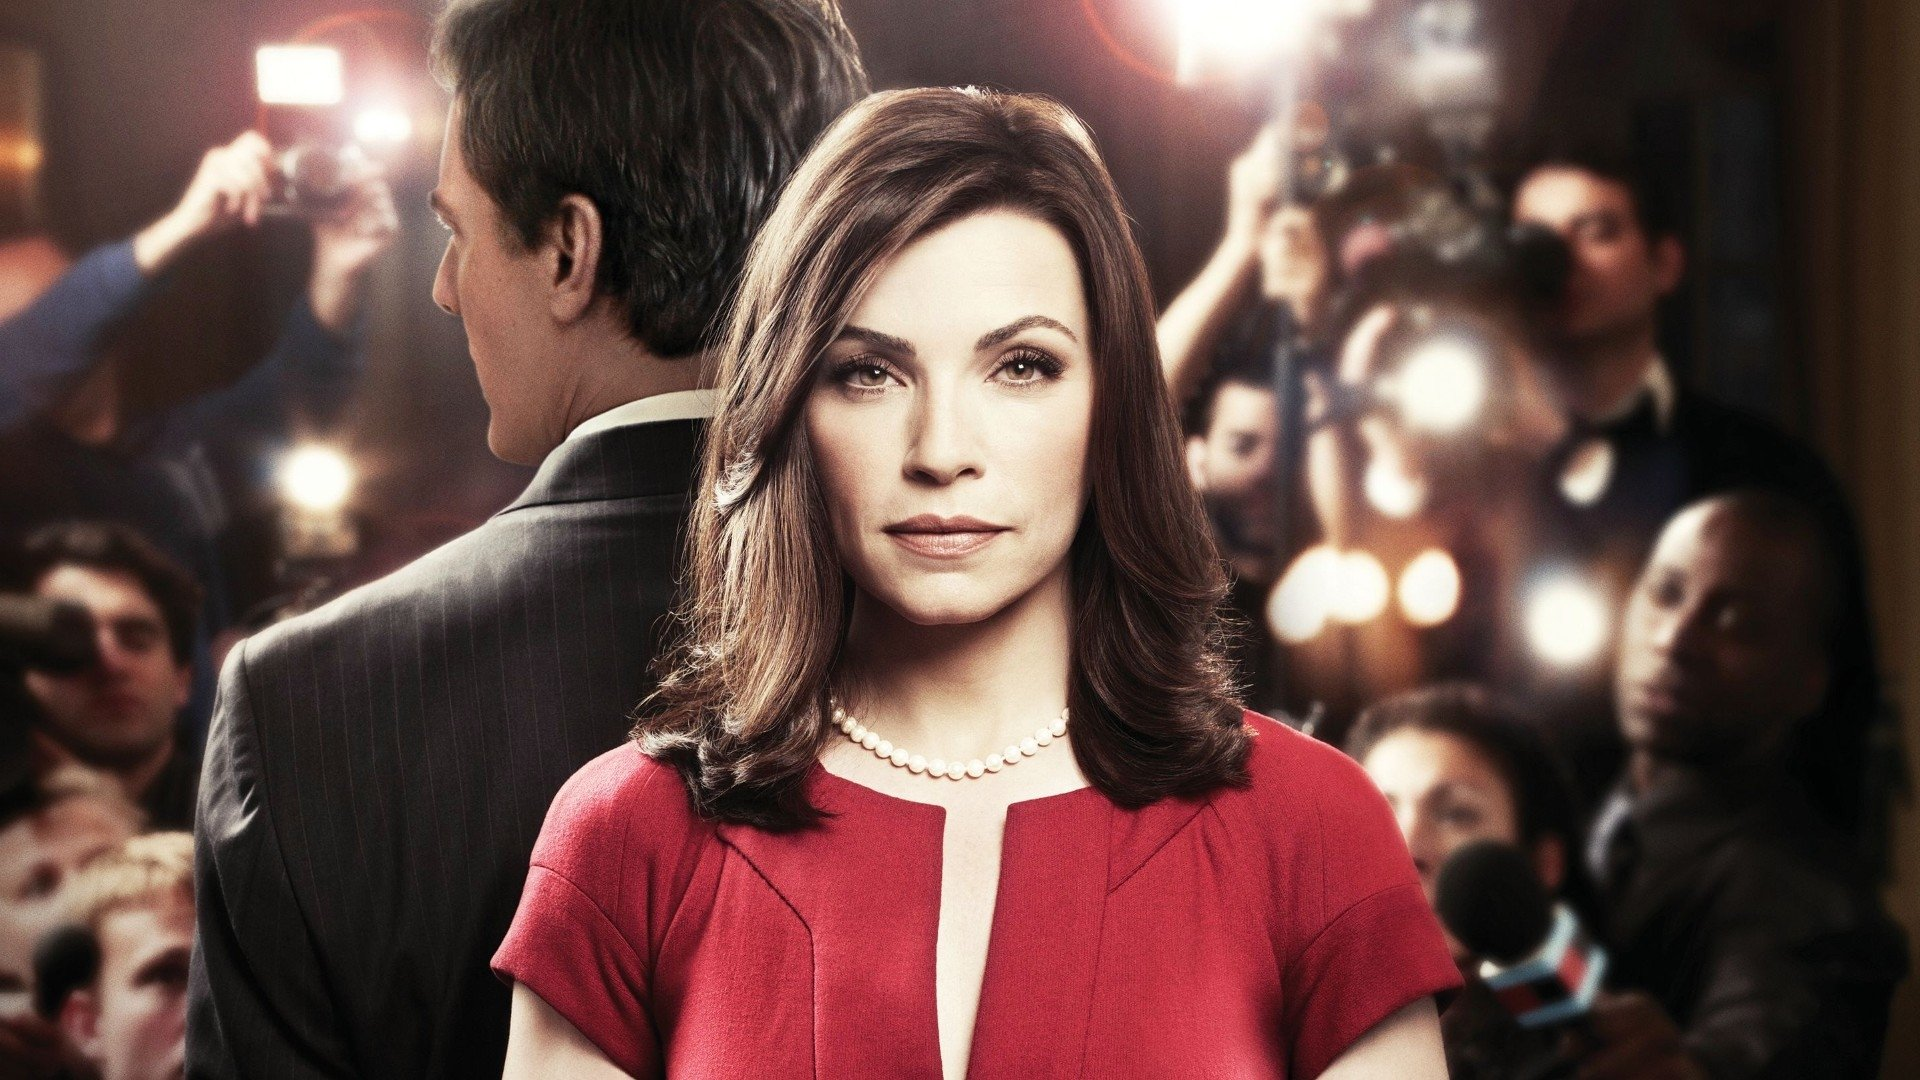 Julianna Margulies Quotes 50 Wallpapers: The Good Wife HD Wallpaper